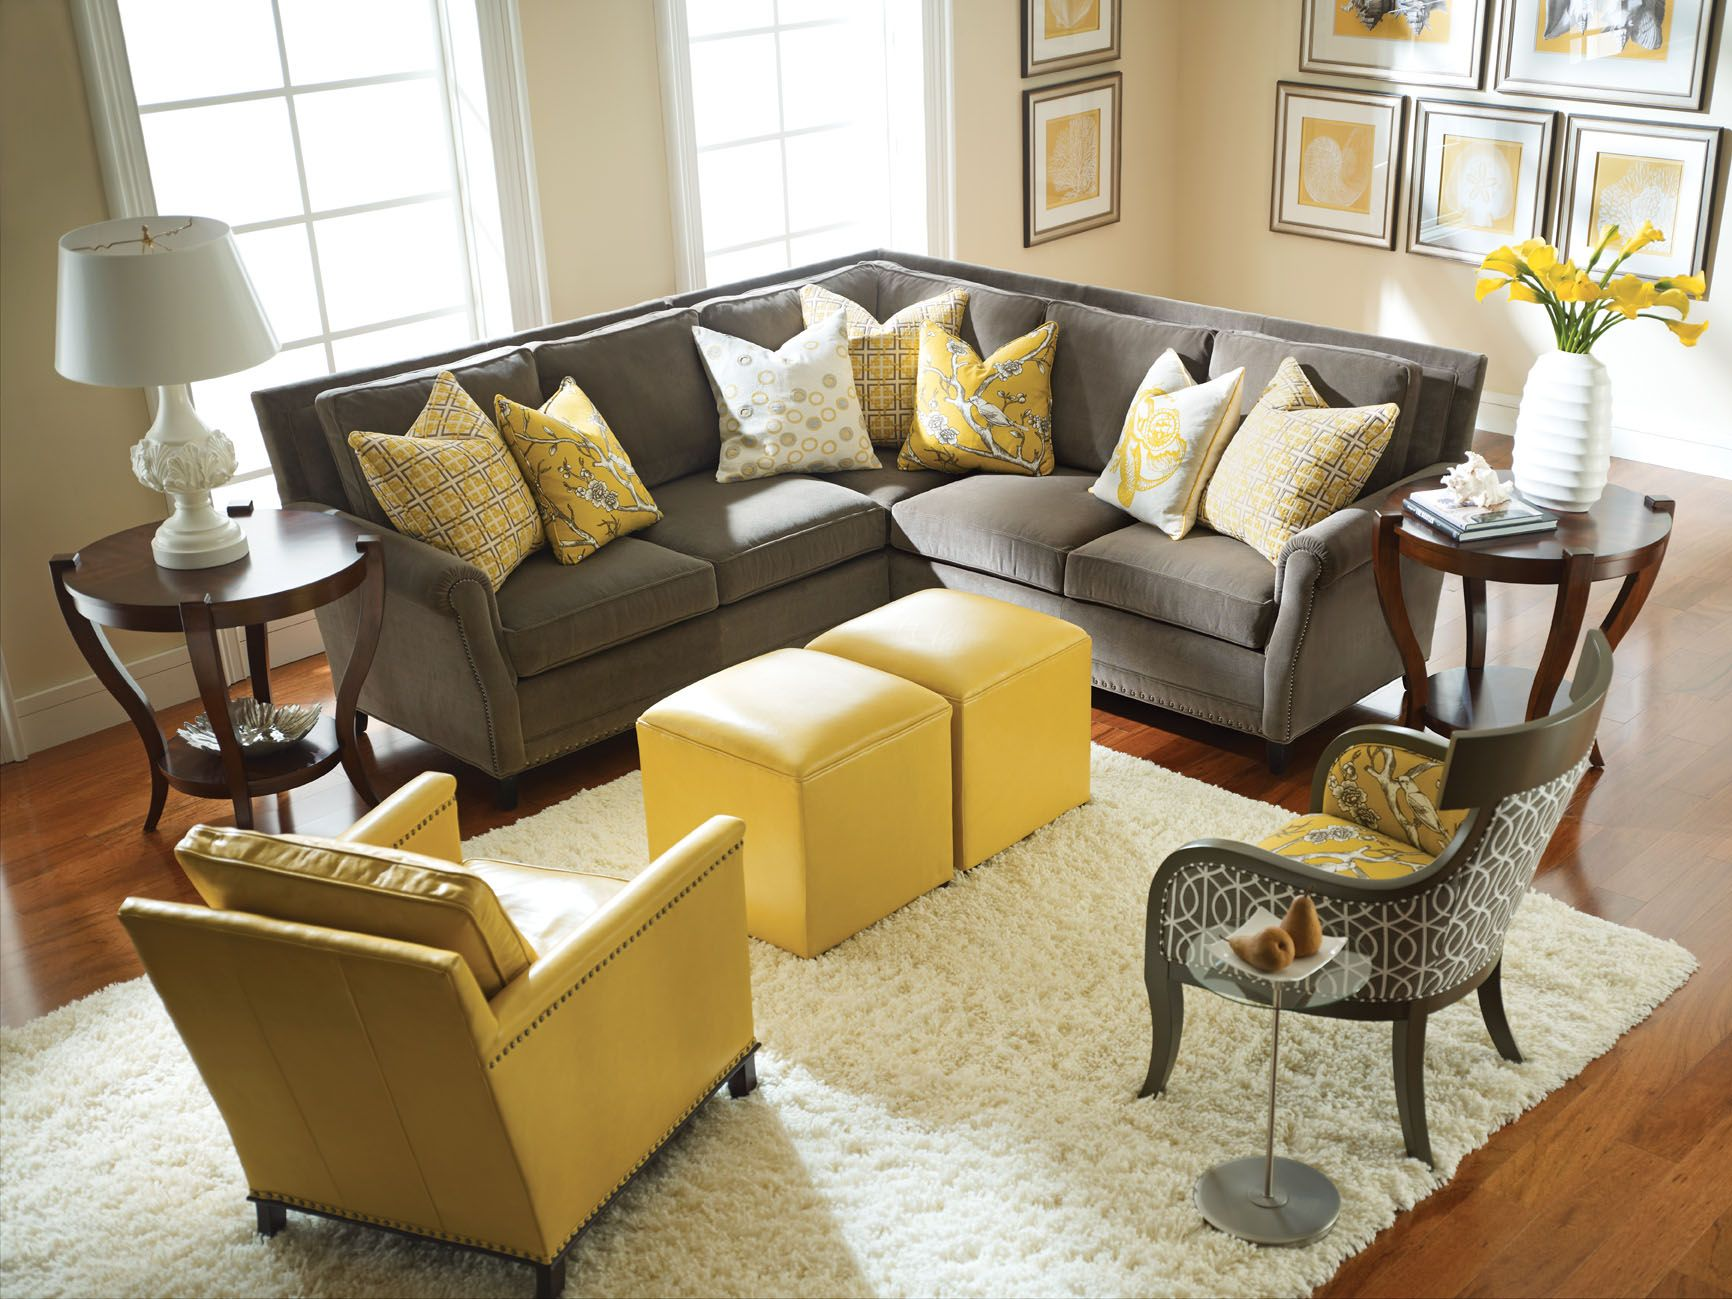 Yellow And Grey Living Room Best 25 Yellow gray room ideas on